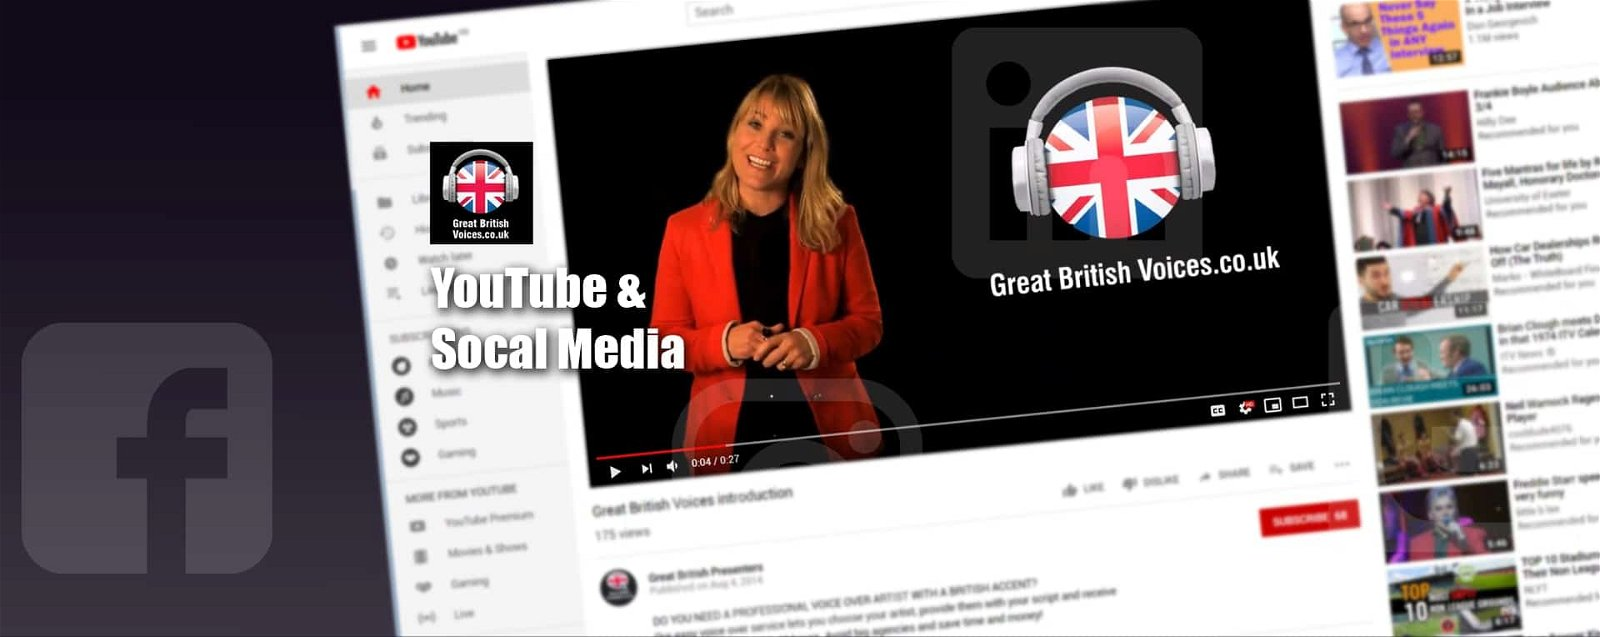 YouTube & Social Media Voices at Great British Voices-min